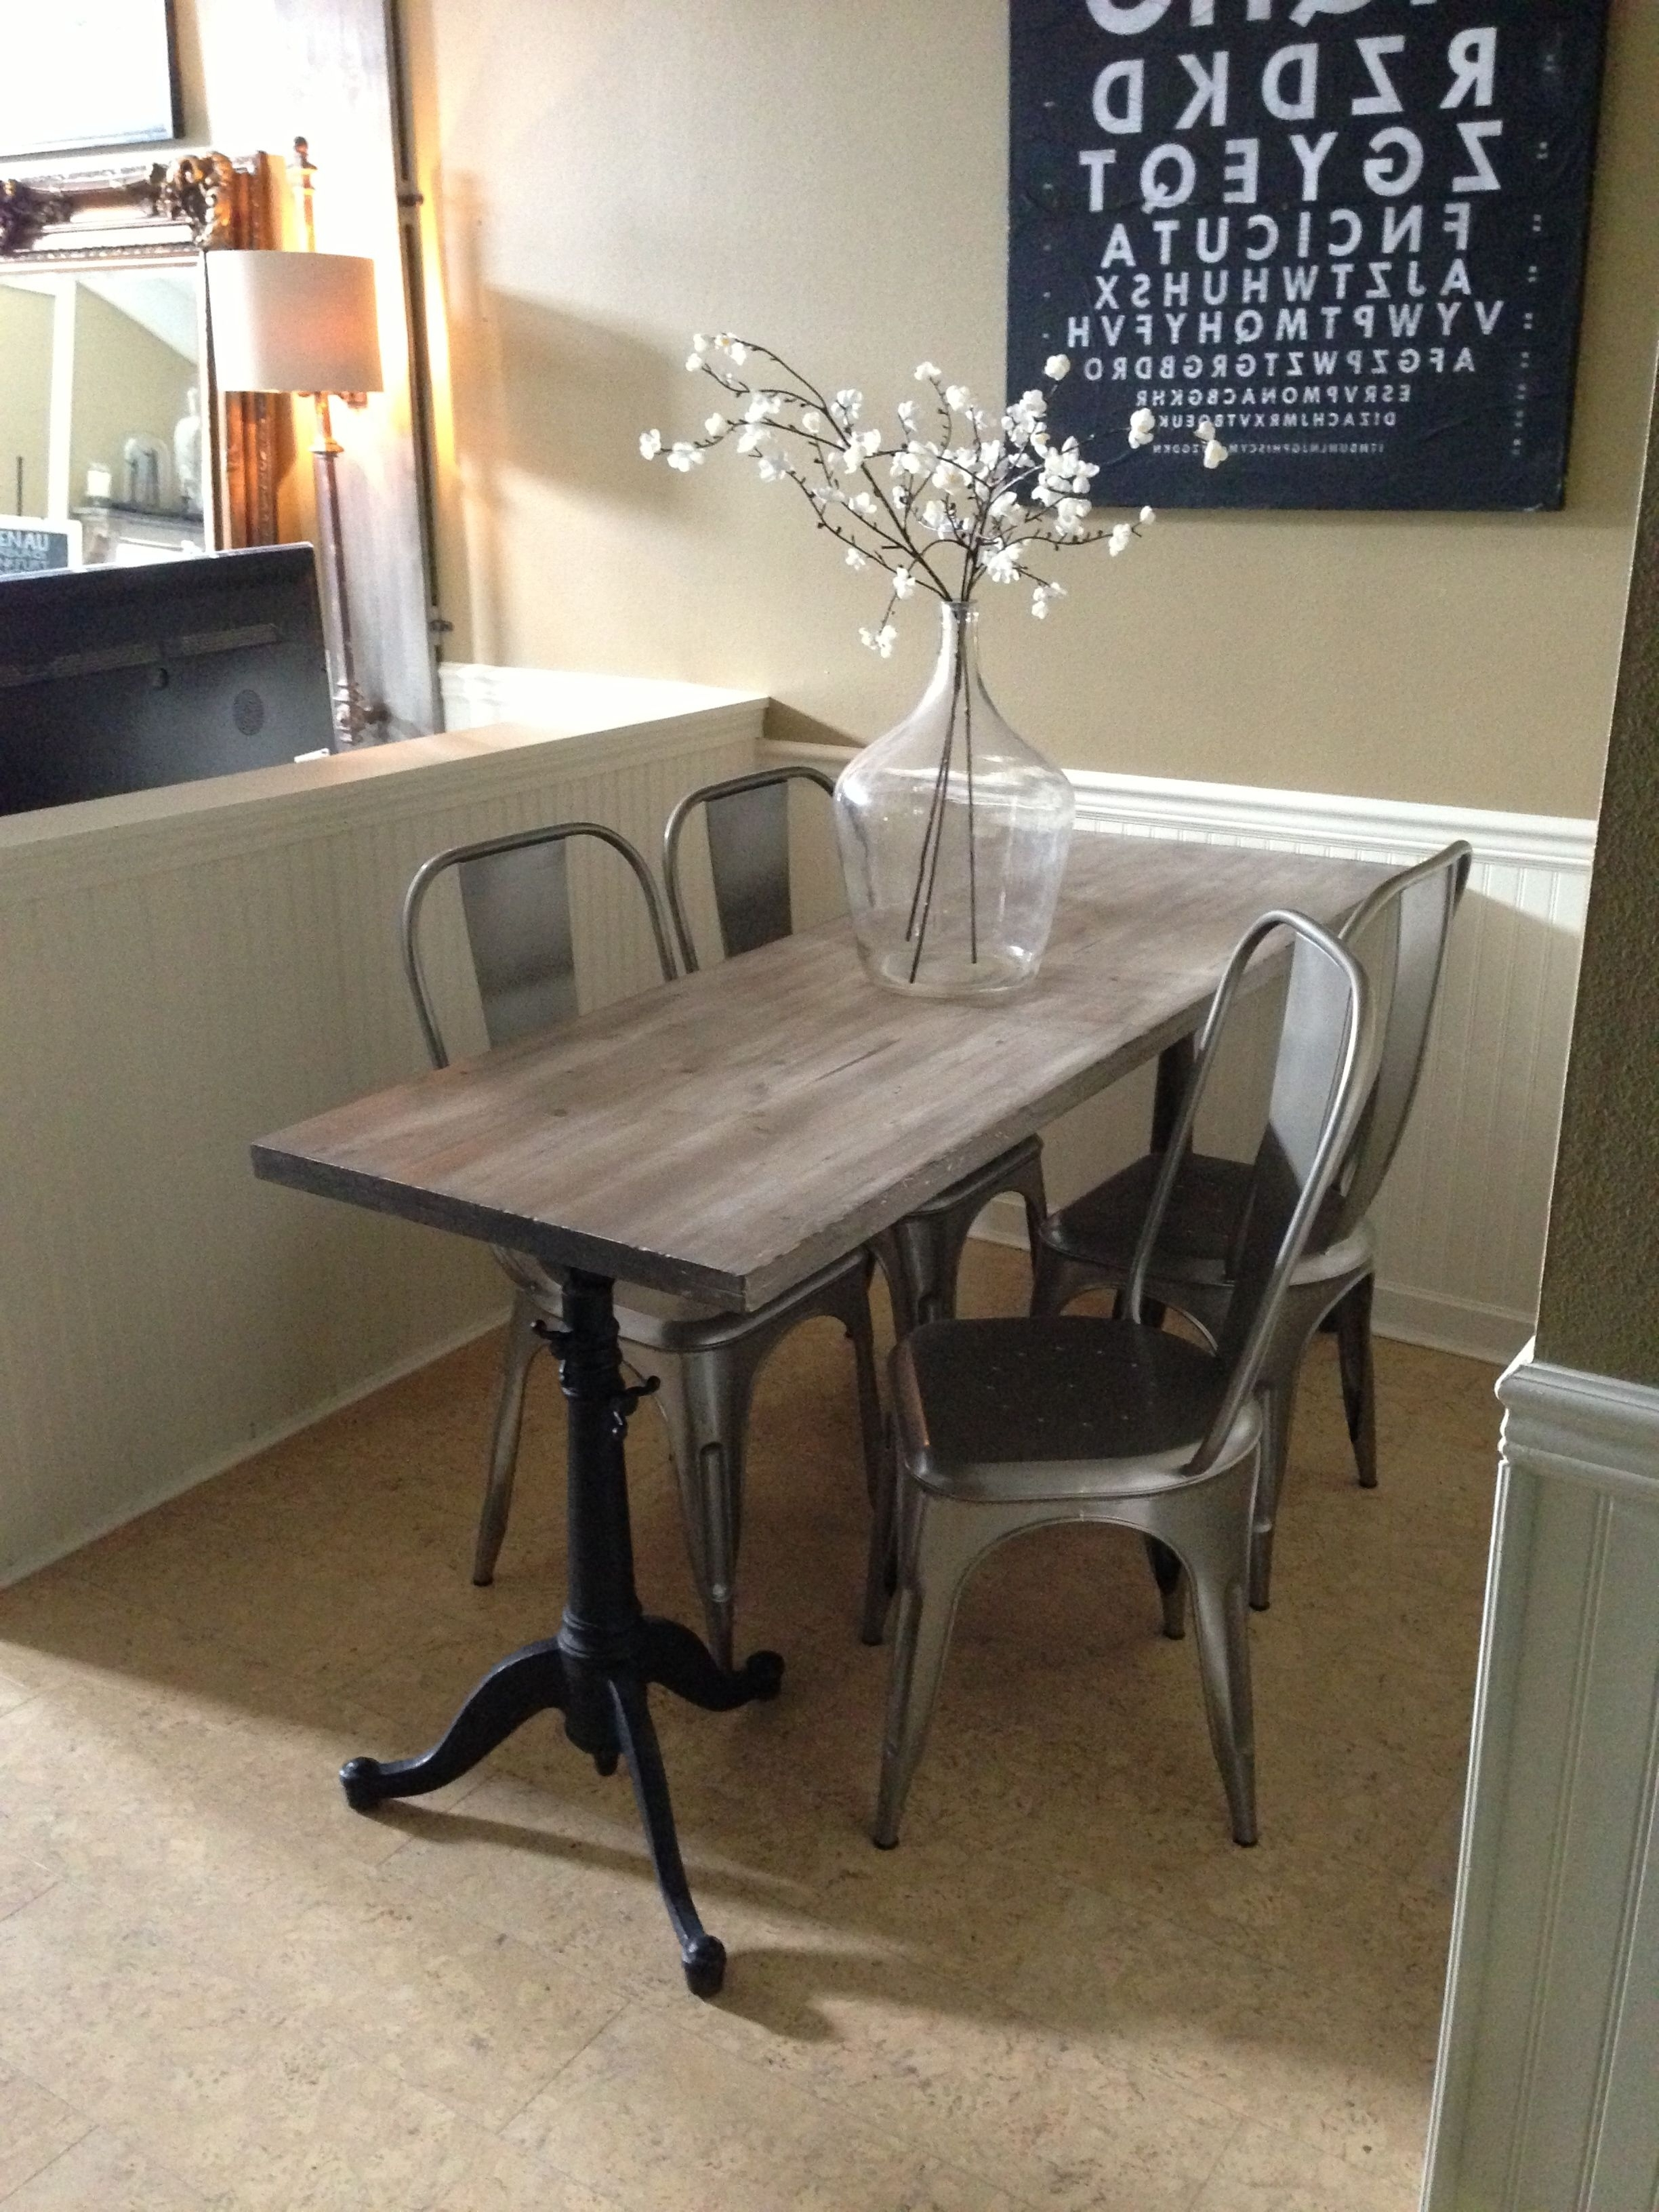 Current 33 Inch Industrial Round Tables In Narrow Dining Table For Narrow Space (View 3 of 20)